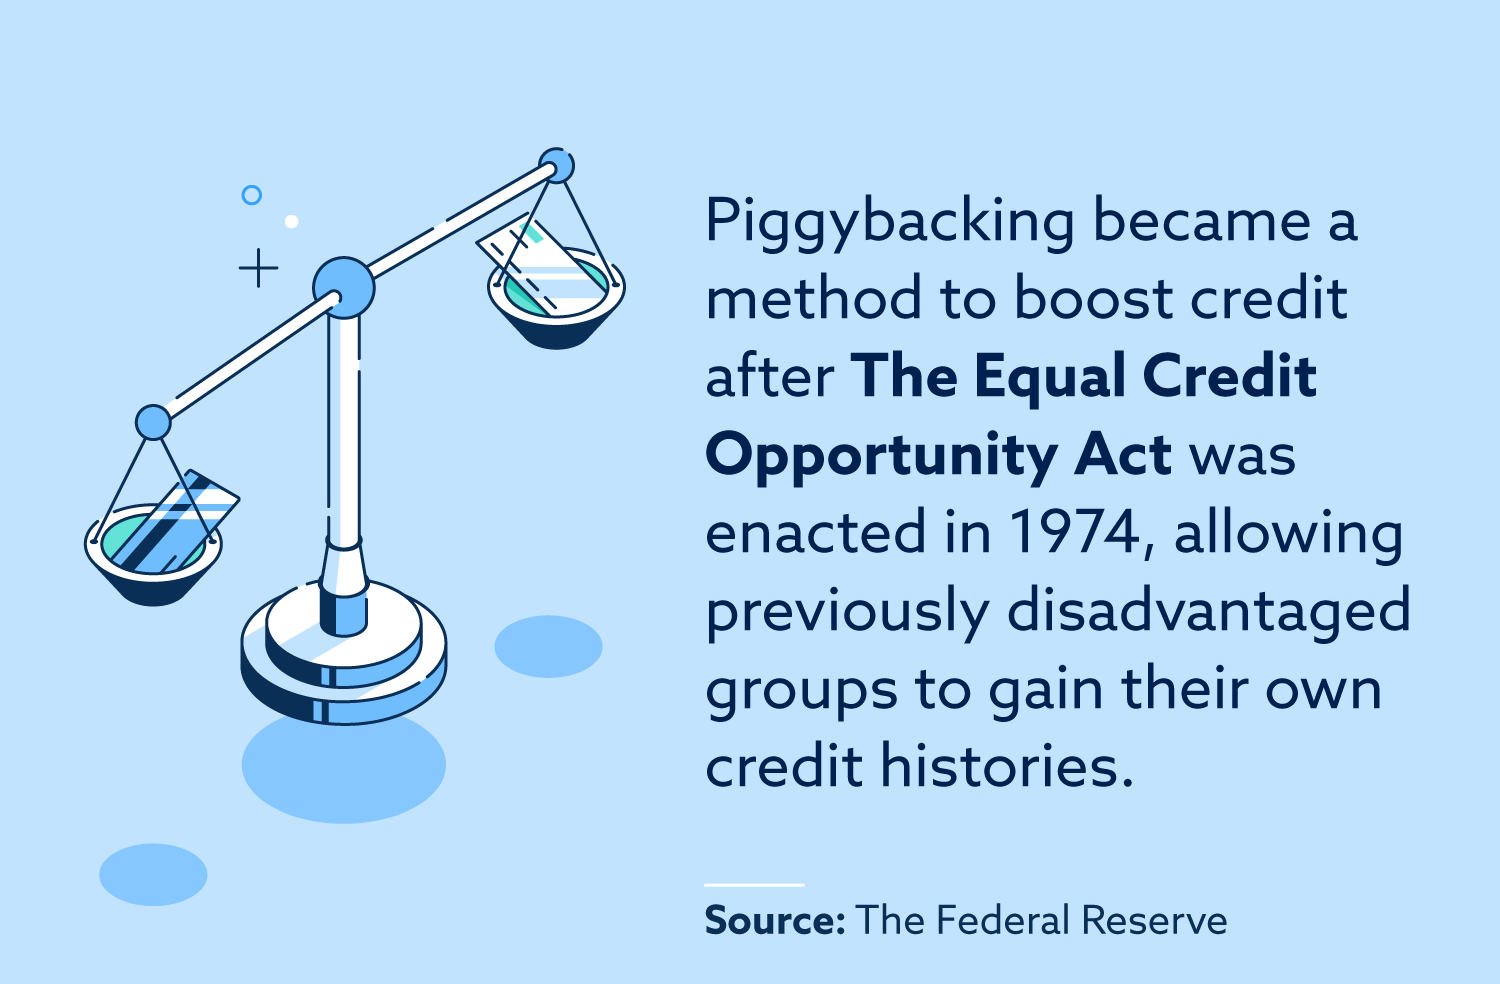 Piggybacking became a method to boost credit after The Equal Opportunity Act was enacted in 1974, allowing previously disadvantaged groups to gain their own credit histories.